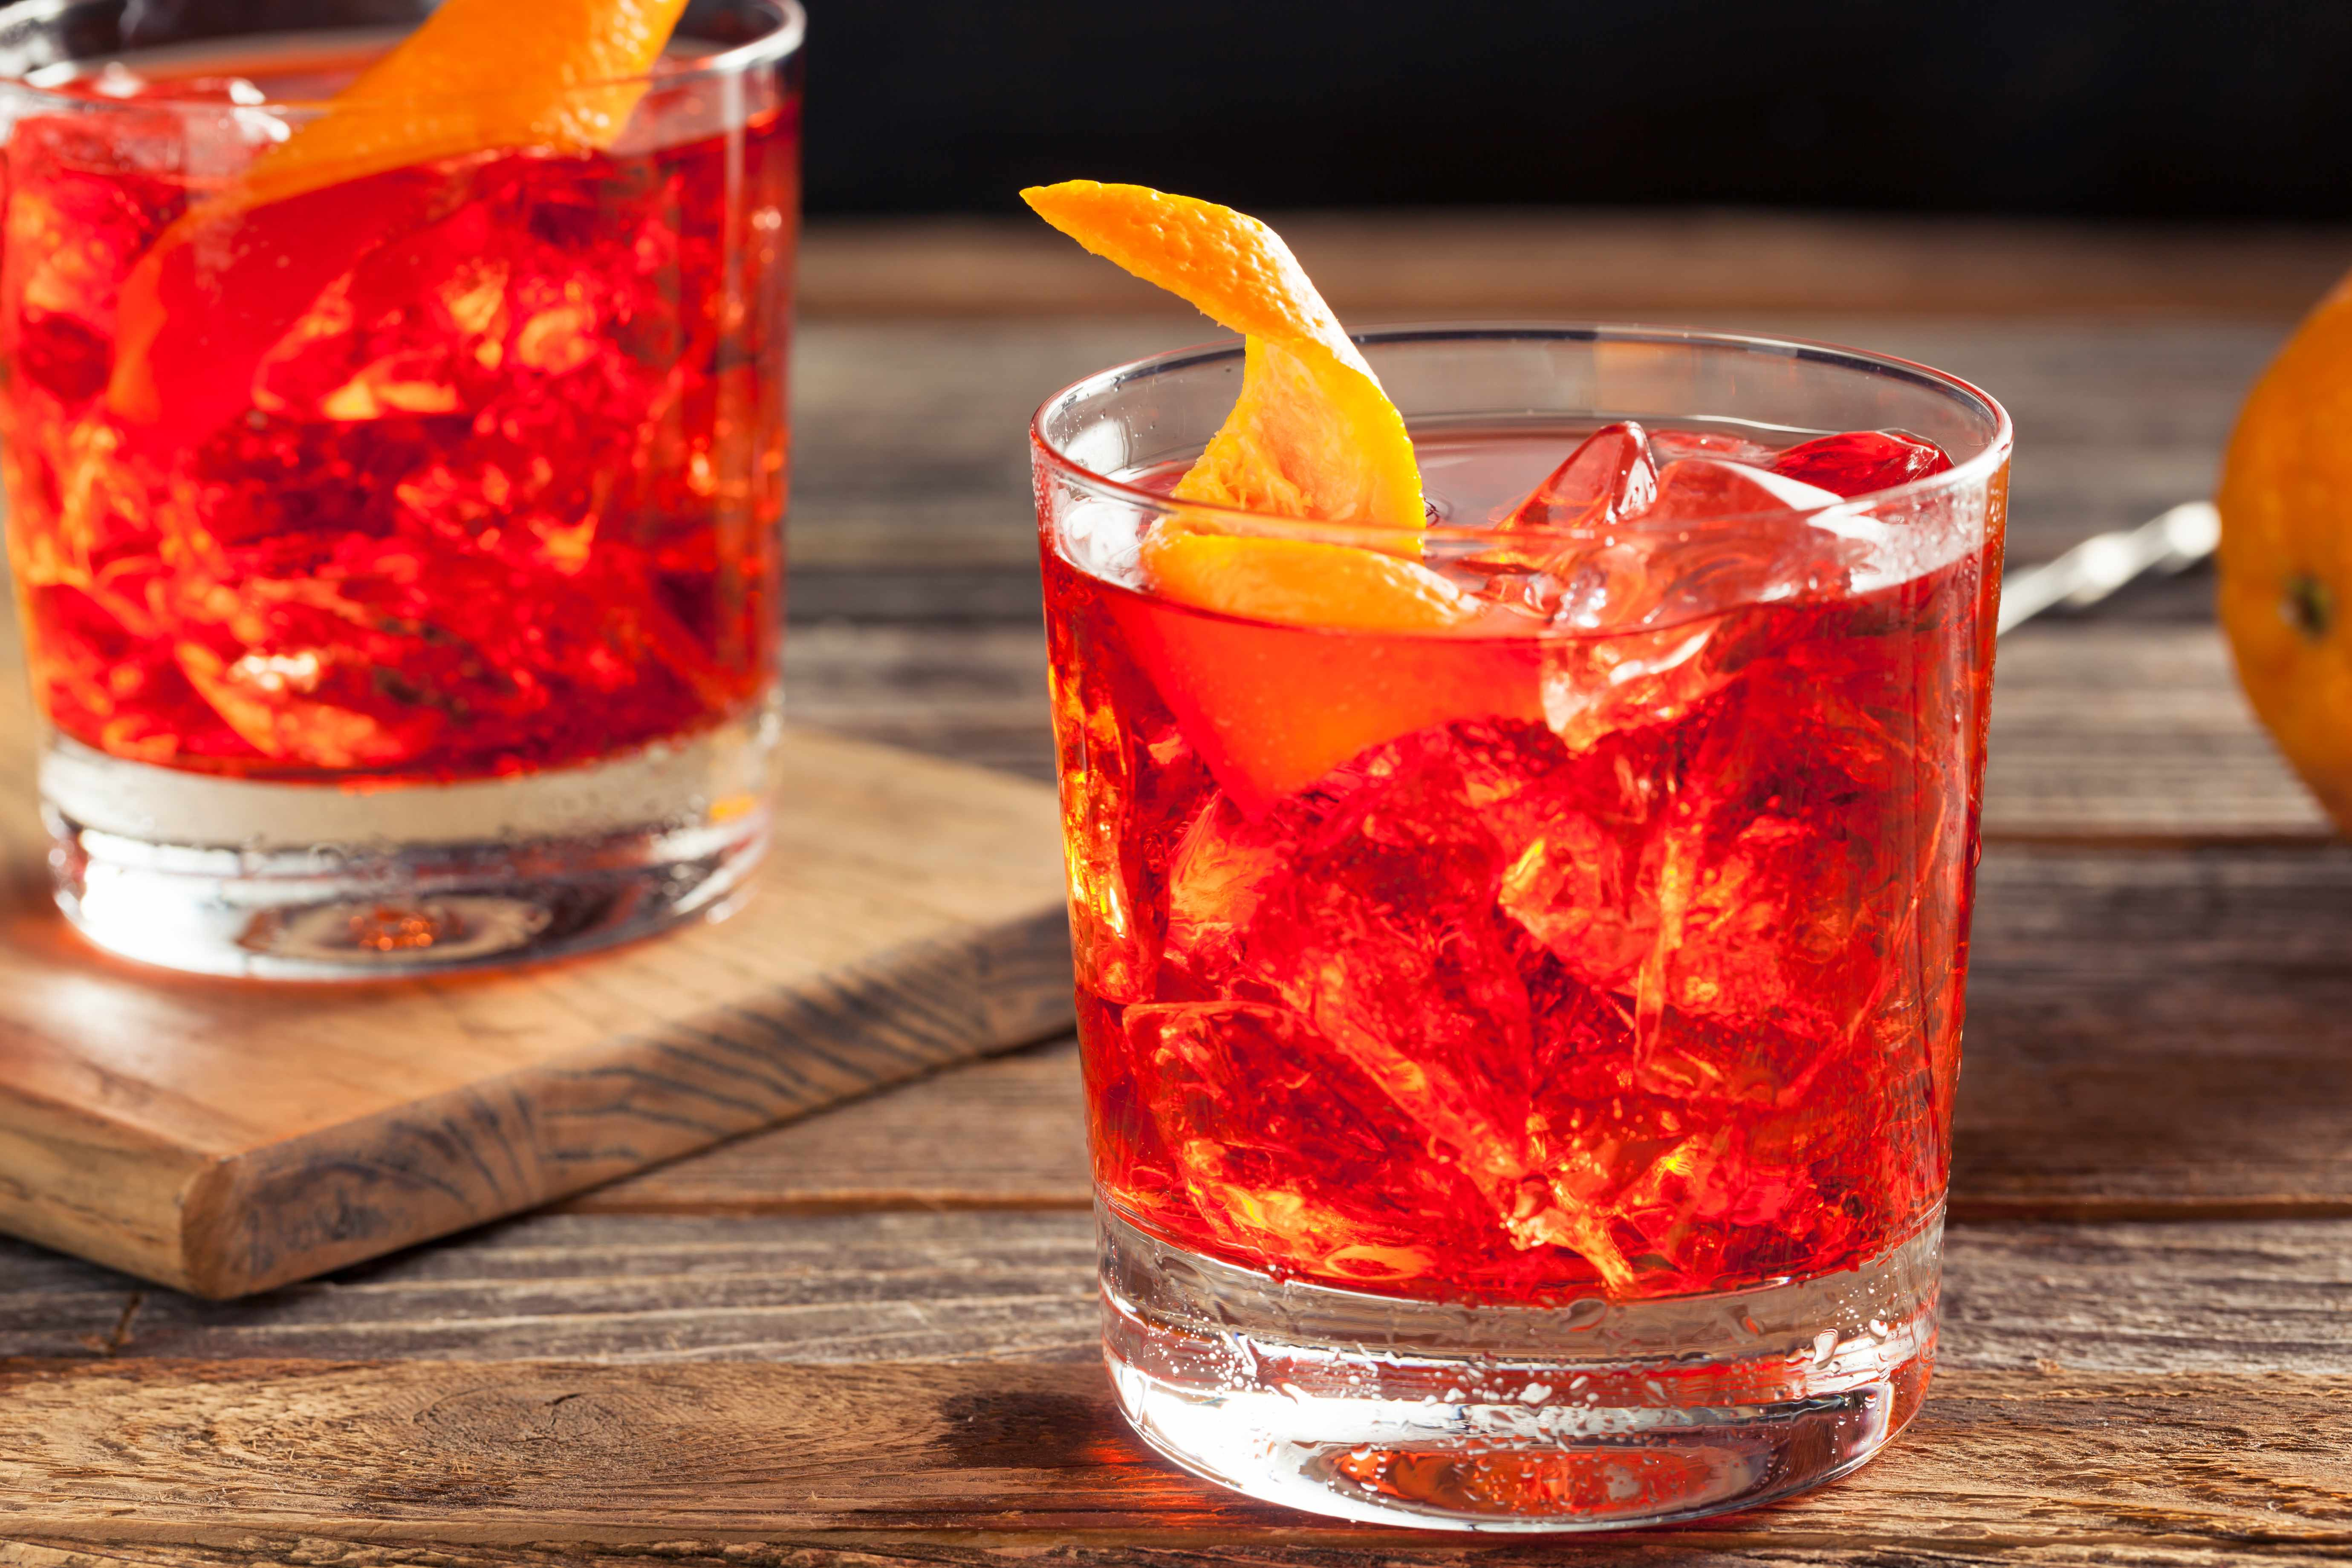 Negroni Cocktail Recipe - Negroni sbagliato: bright red cocktail served in a glass tumbler with an orange twist